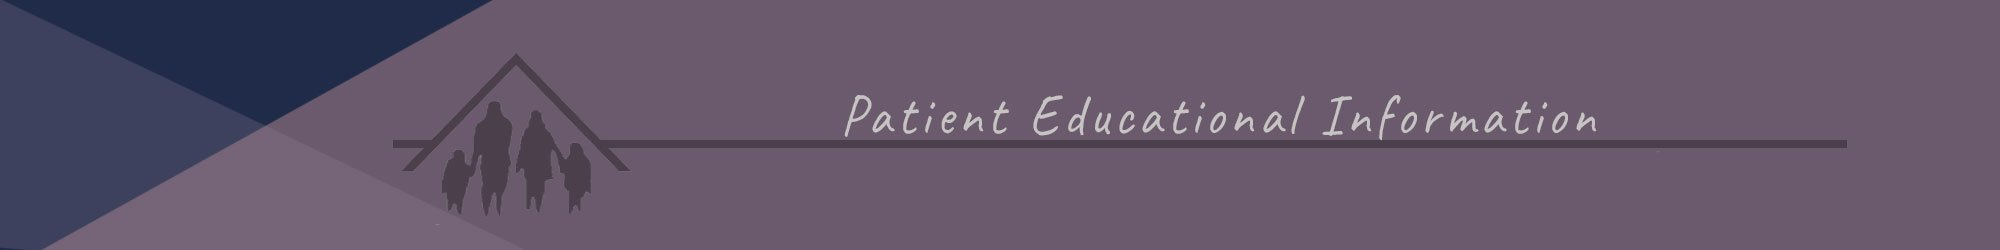 Dental Education Page